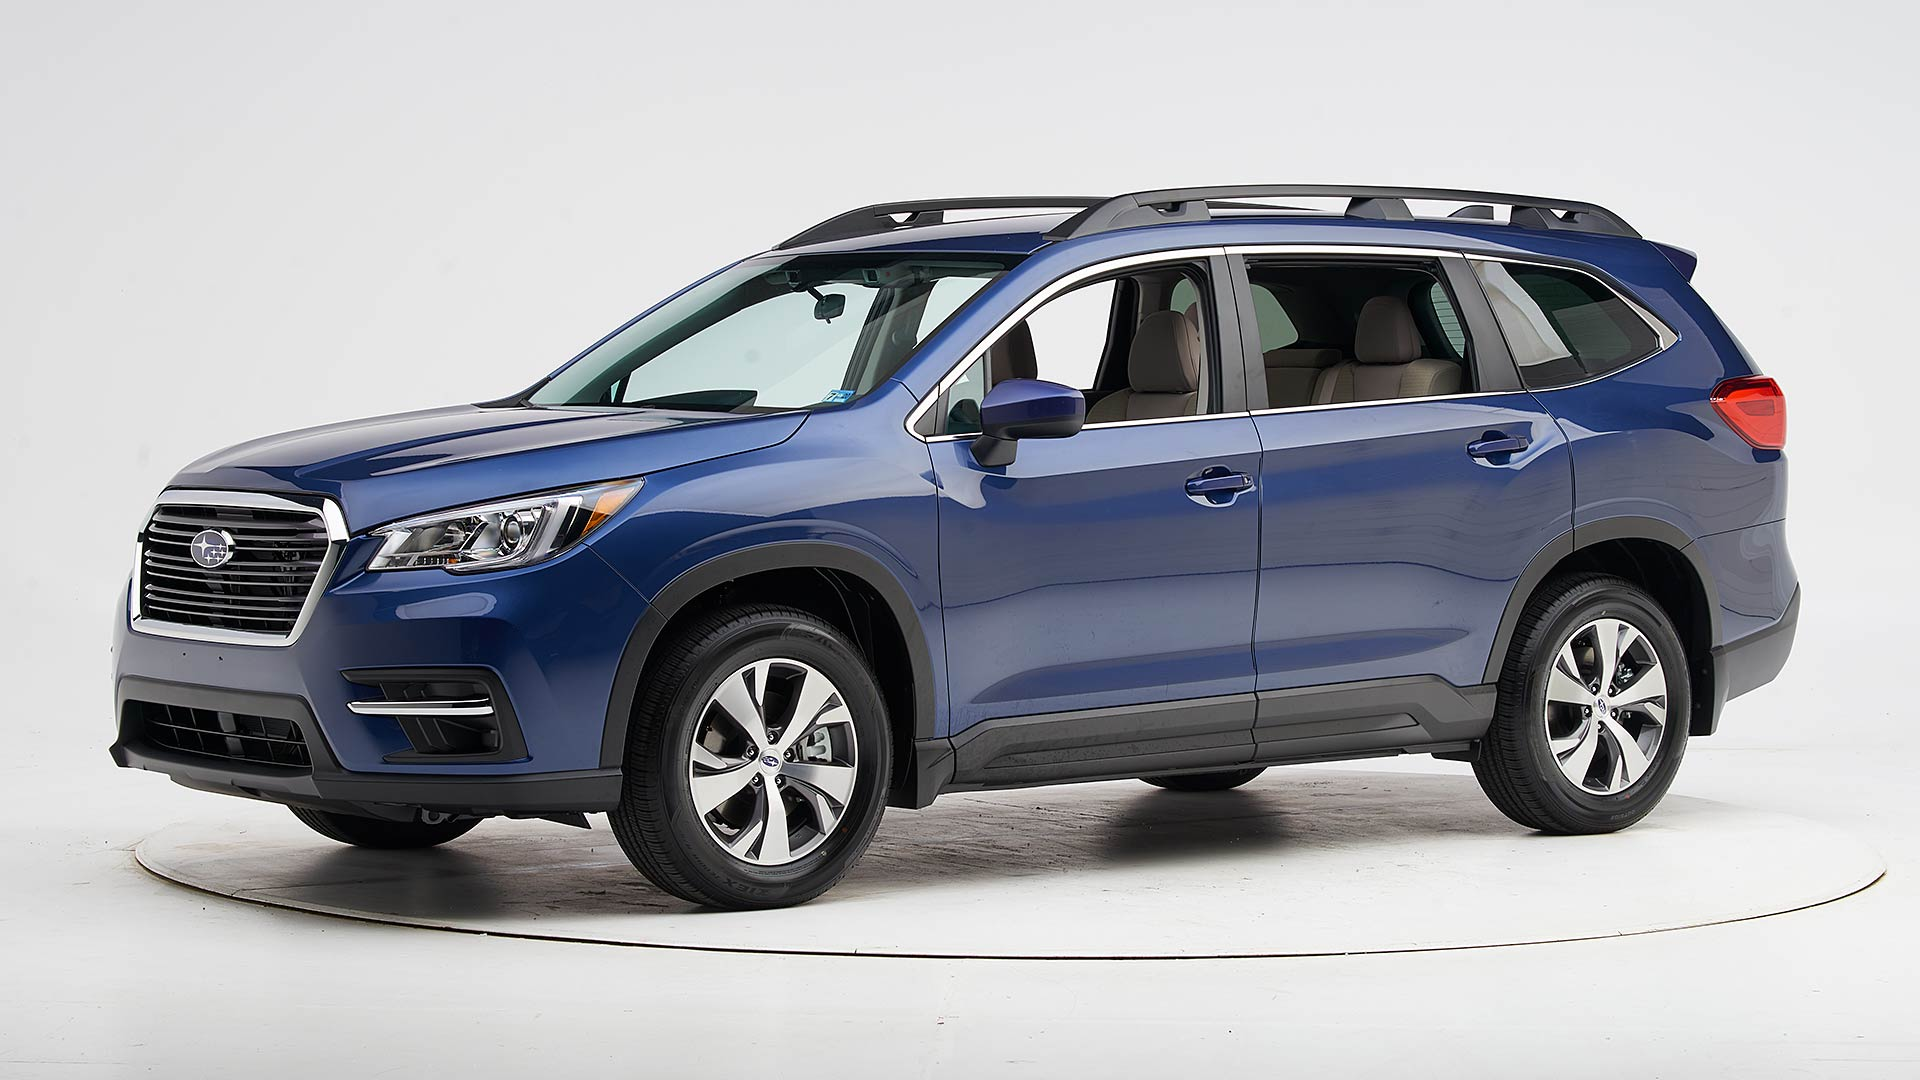 2020 Subaru Ascent 4-door SUV